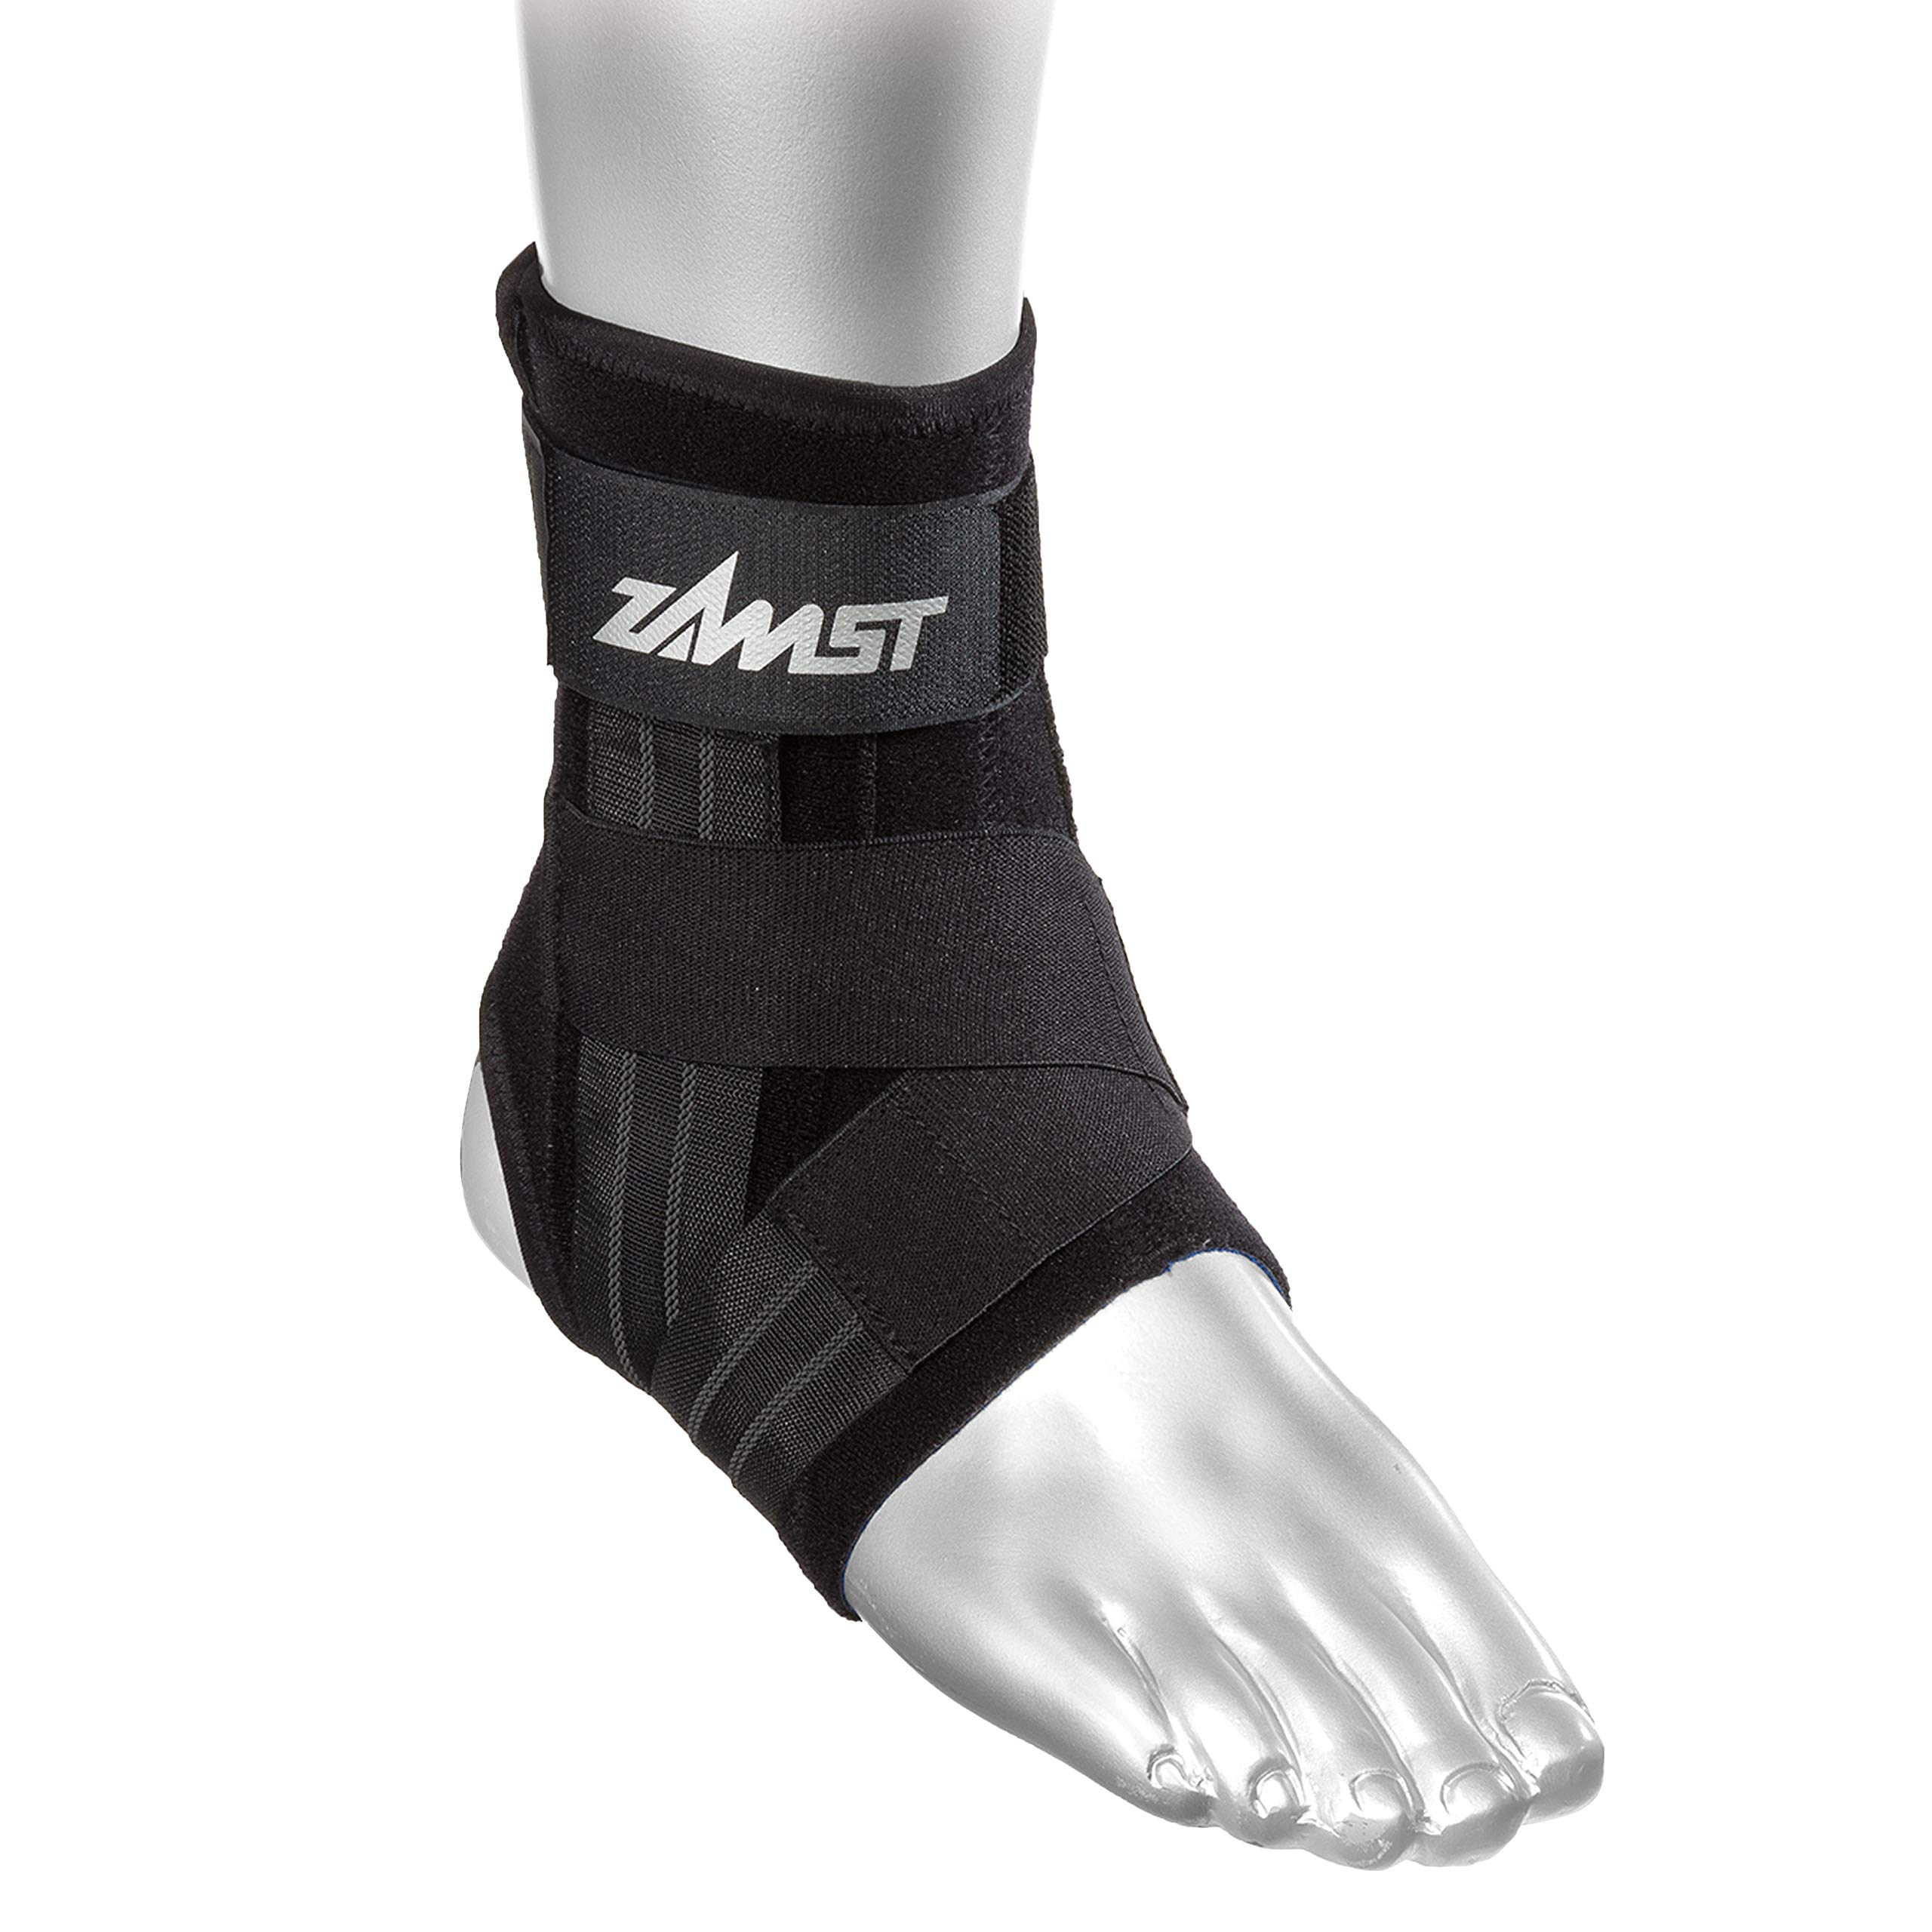 Zamst A1 Right Ankle Brace, Black, Medium